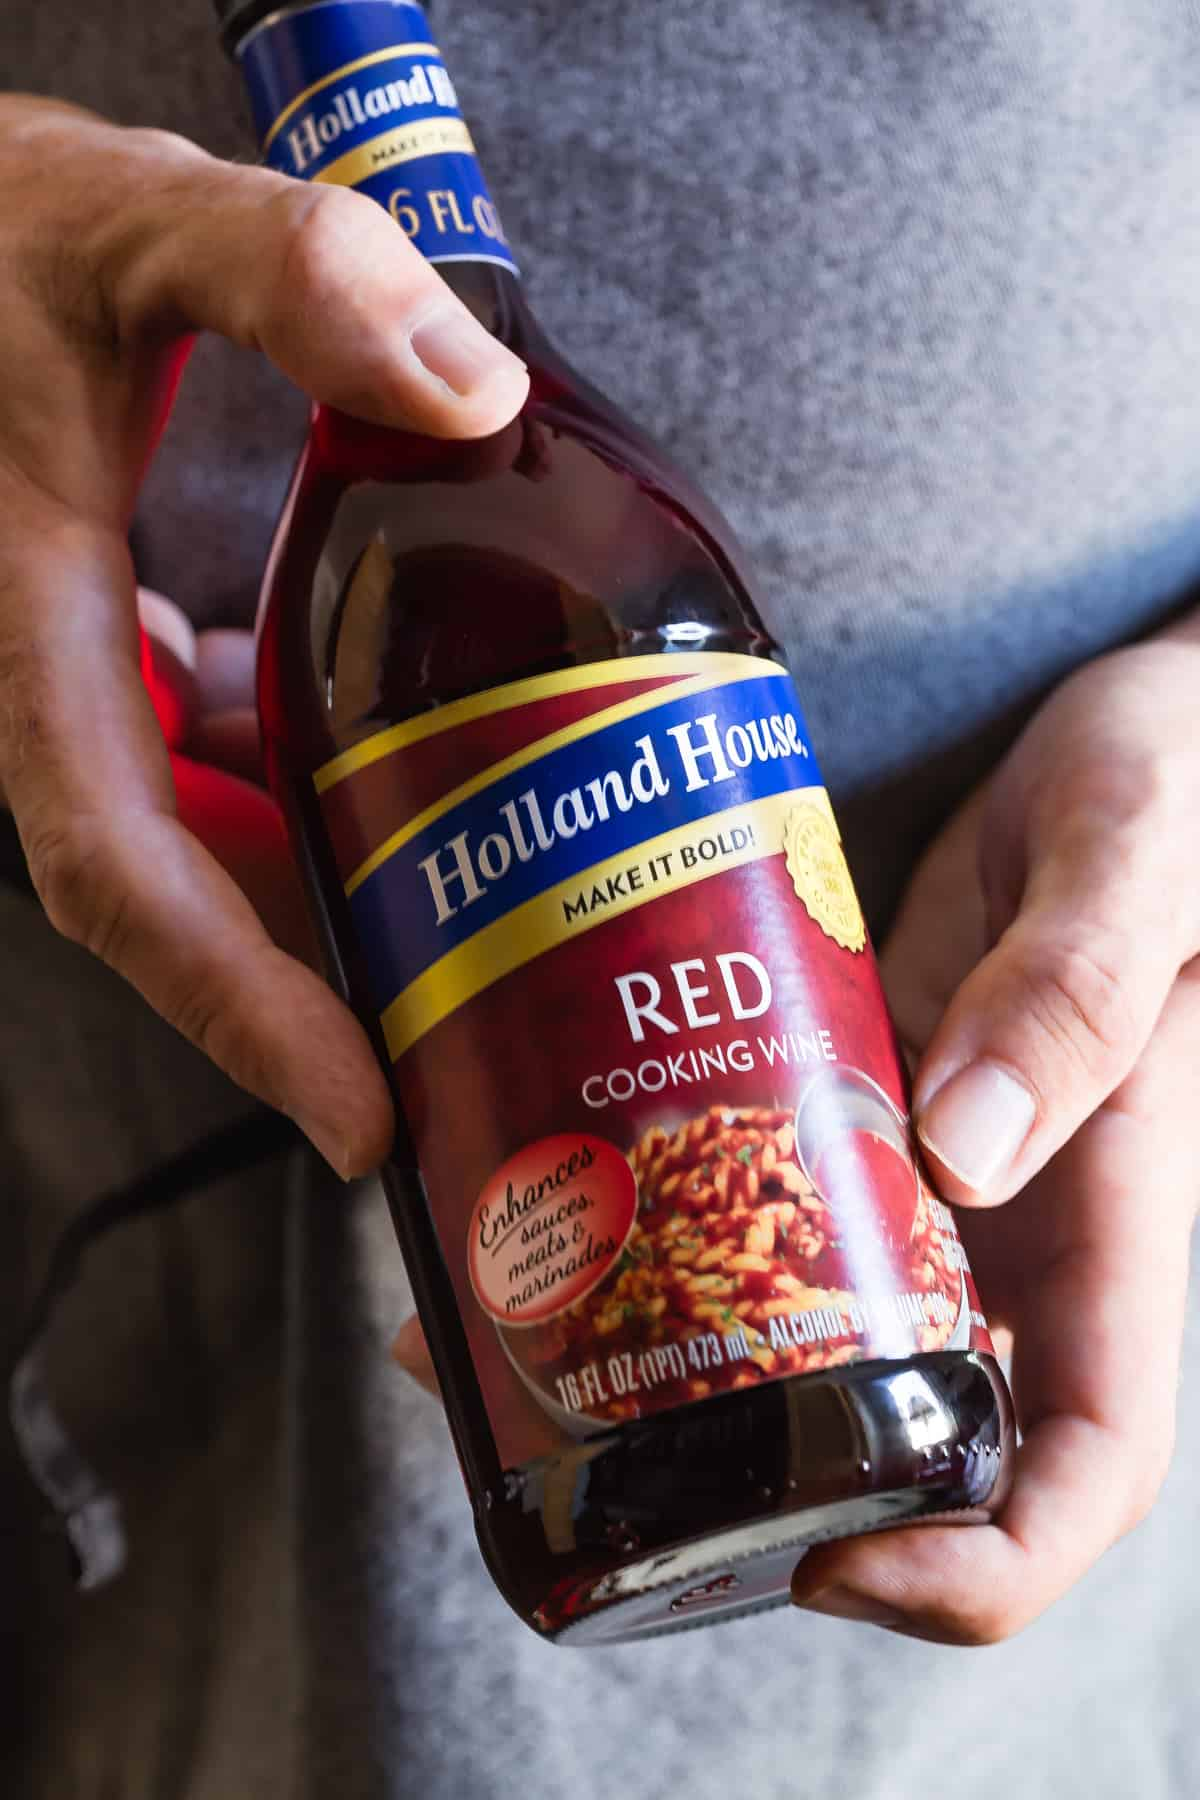 This Holland house Cooking Wine is the secret ingredient in my beef casserole!